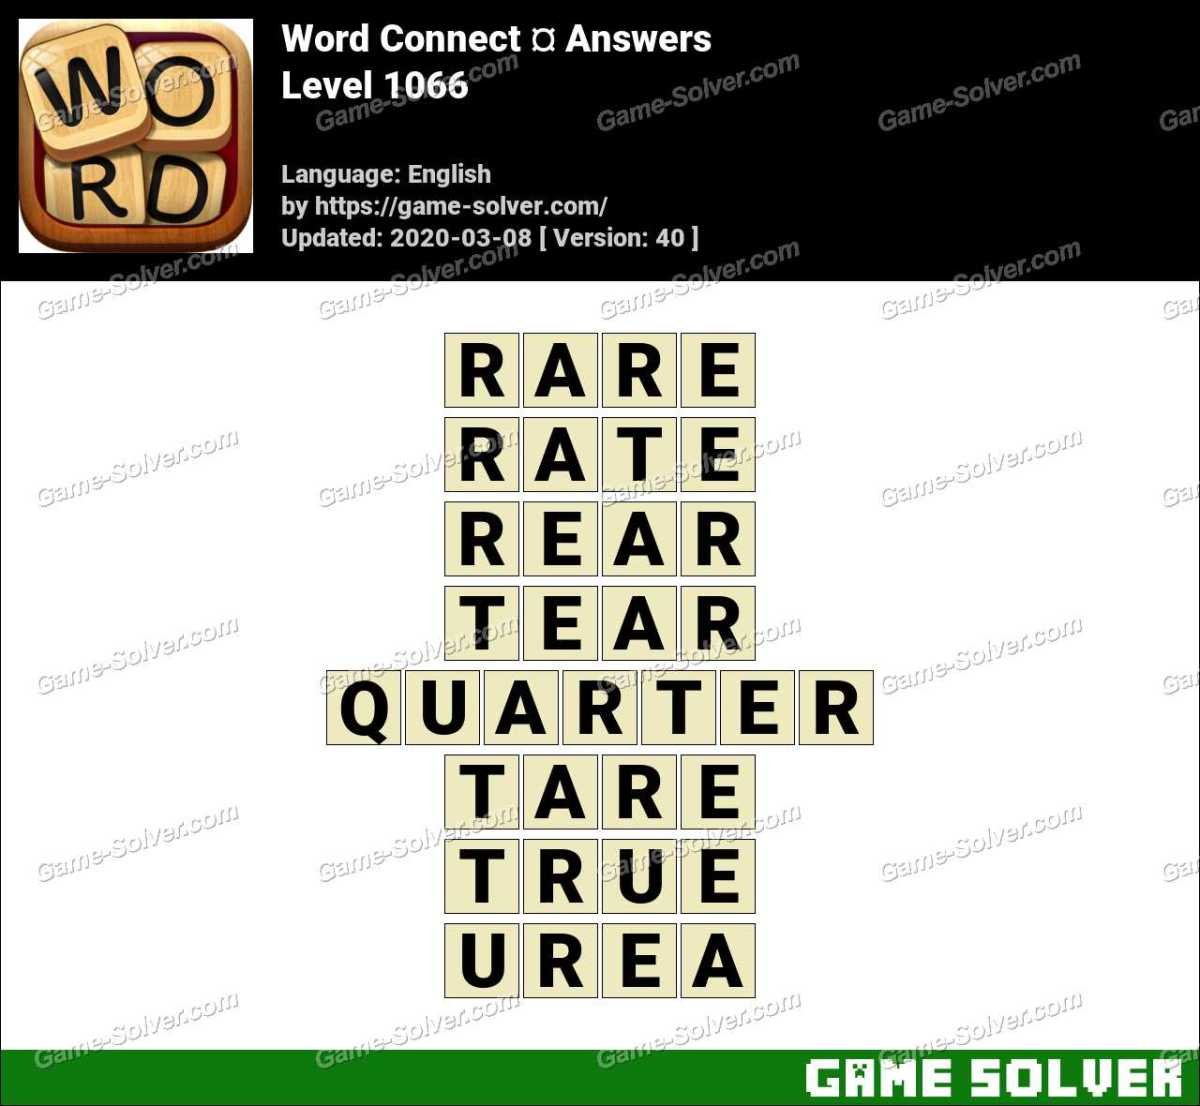 Word Connect Level 1066 Answers